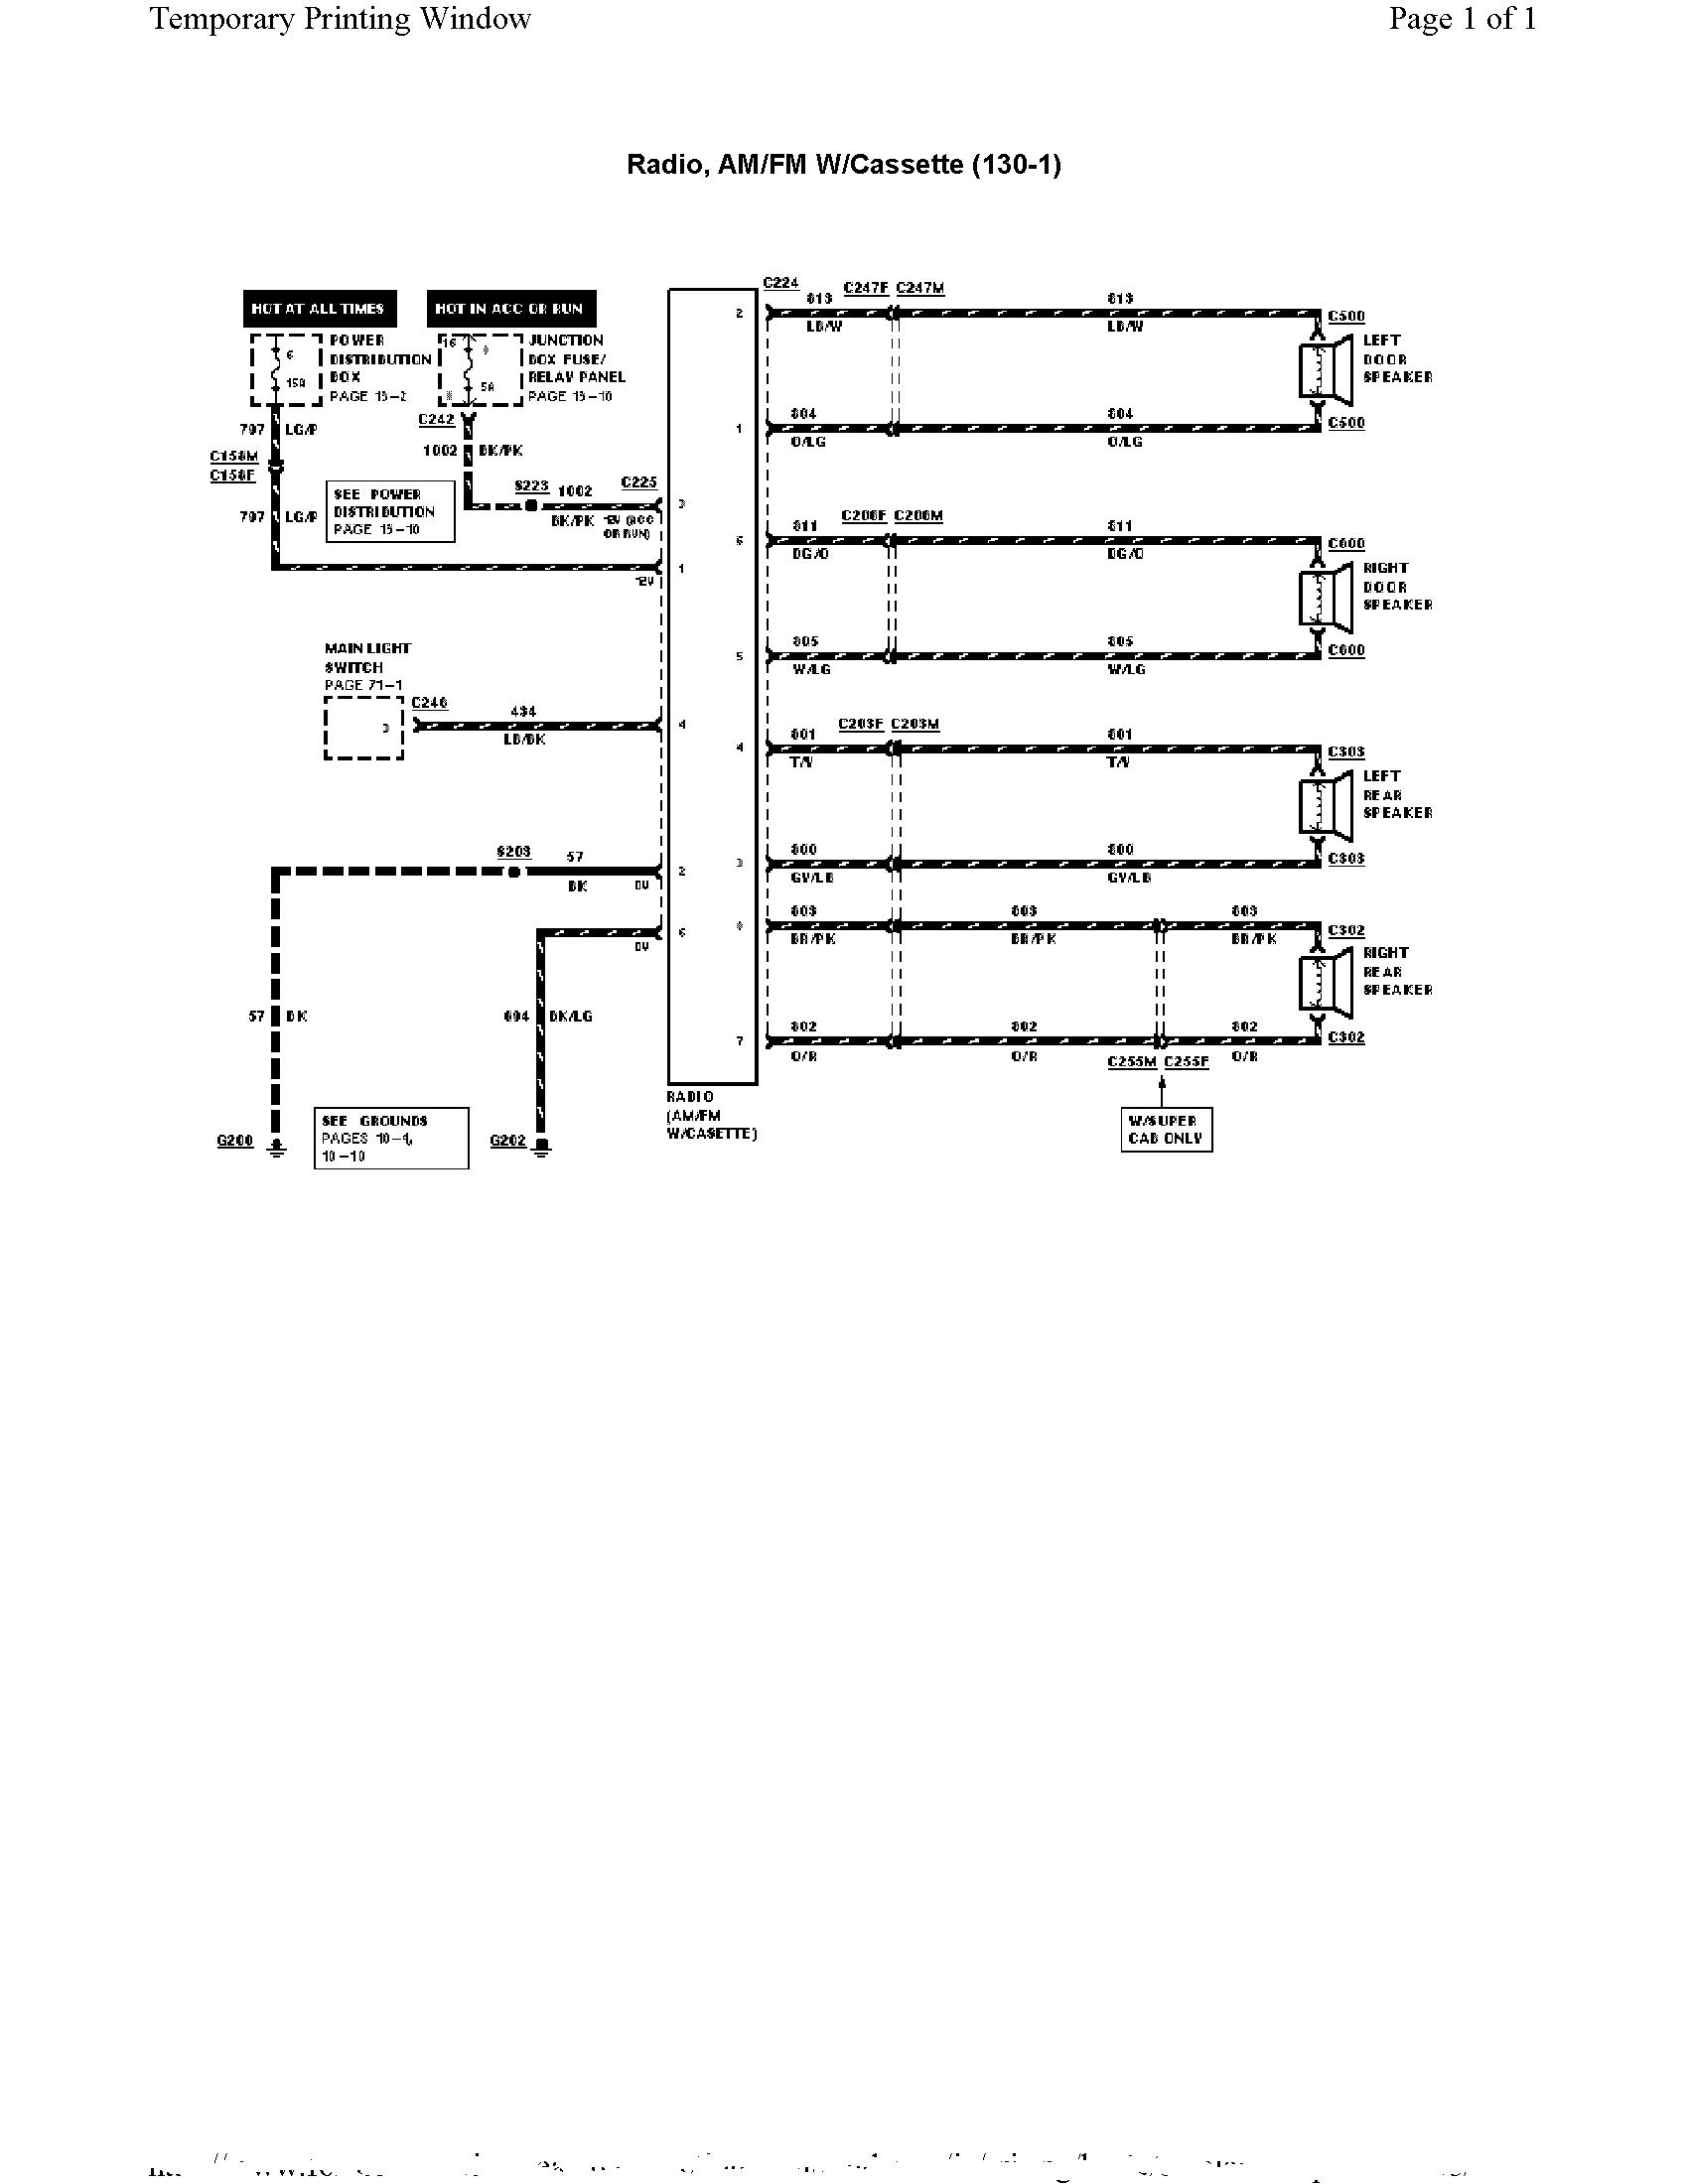 ford xl2f radio wiring diagram im changing my f150 radio/cassette to an explorer radio ... ford truck radio wiring diagram for a 1995 ford f 150 #1